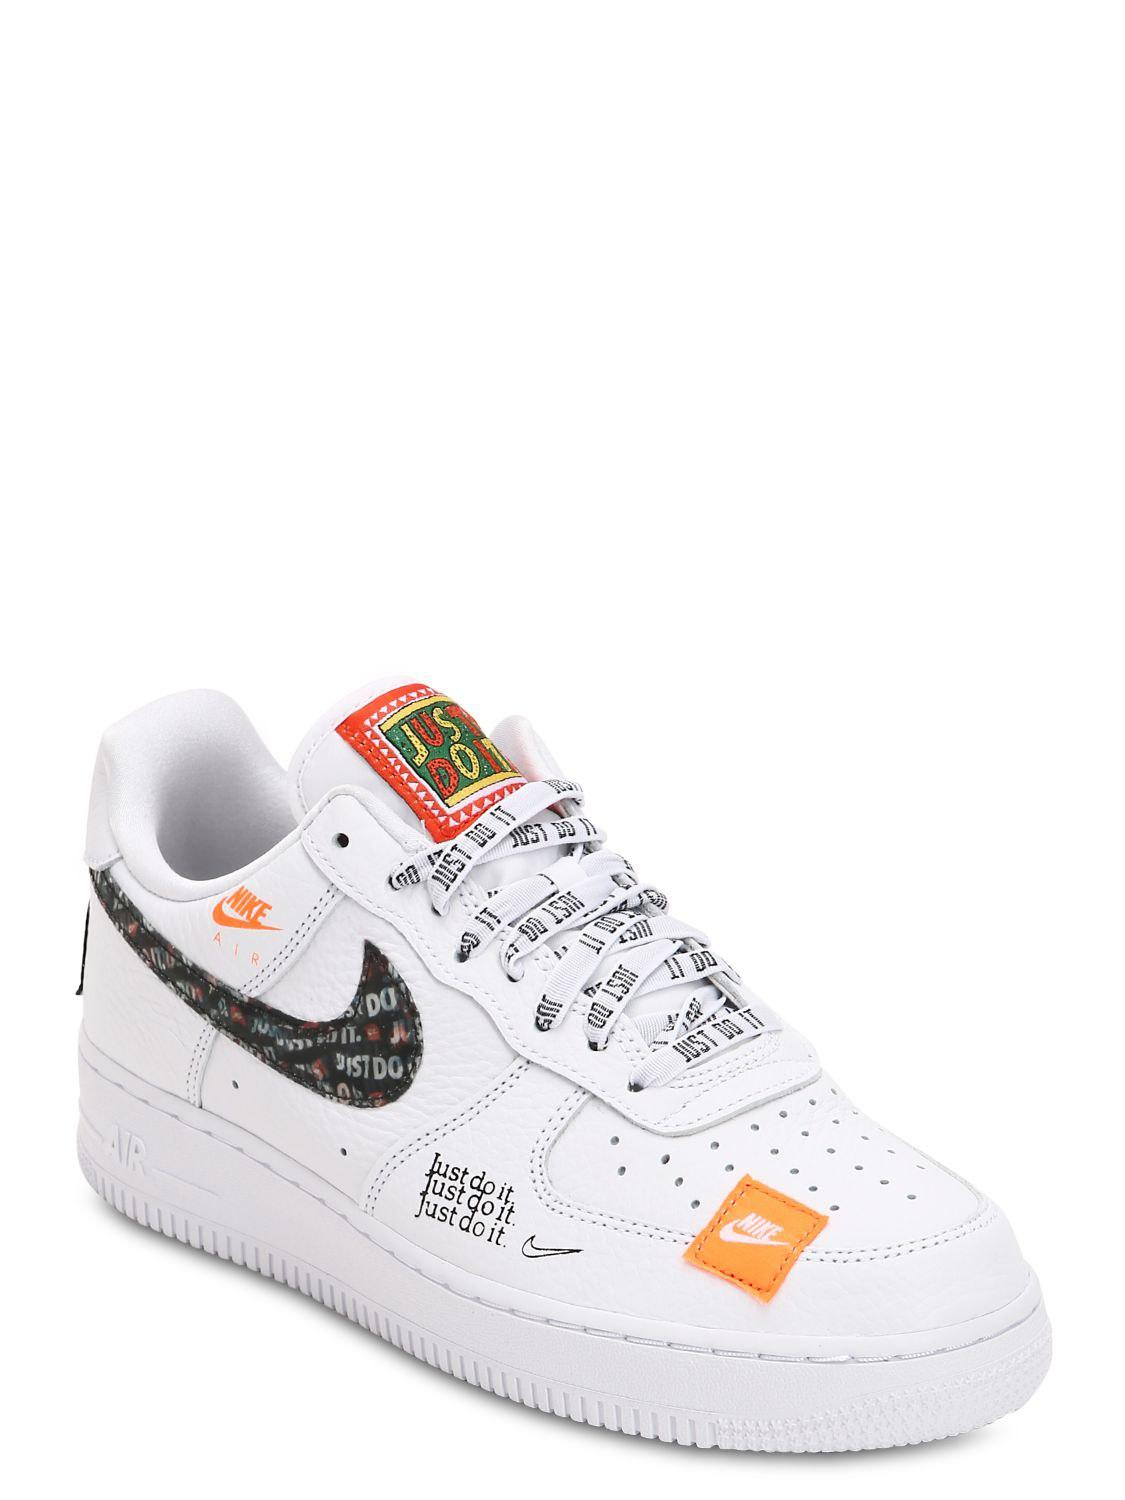 Force Nike Just Do Basket Air It odxCBe